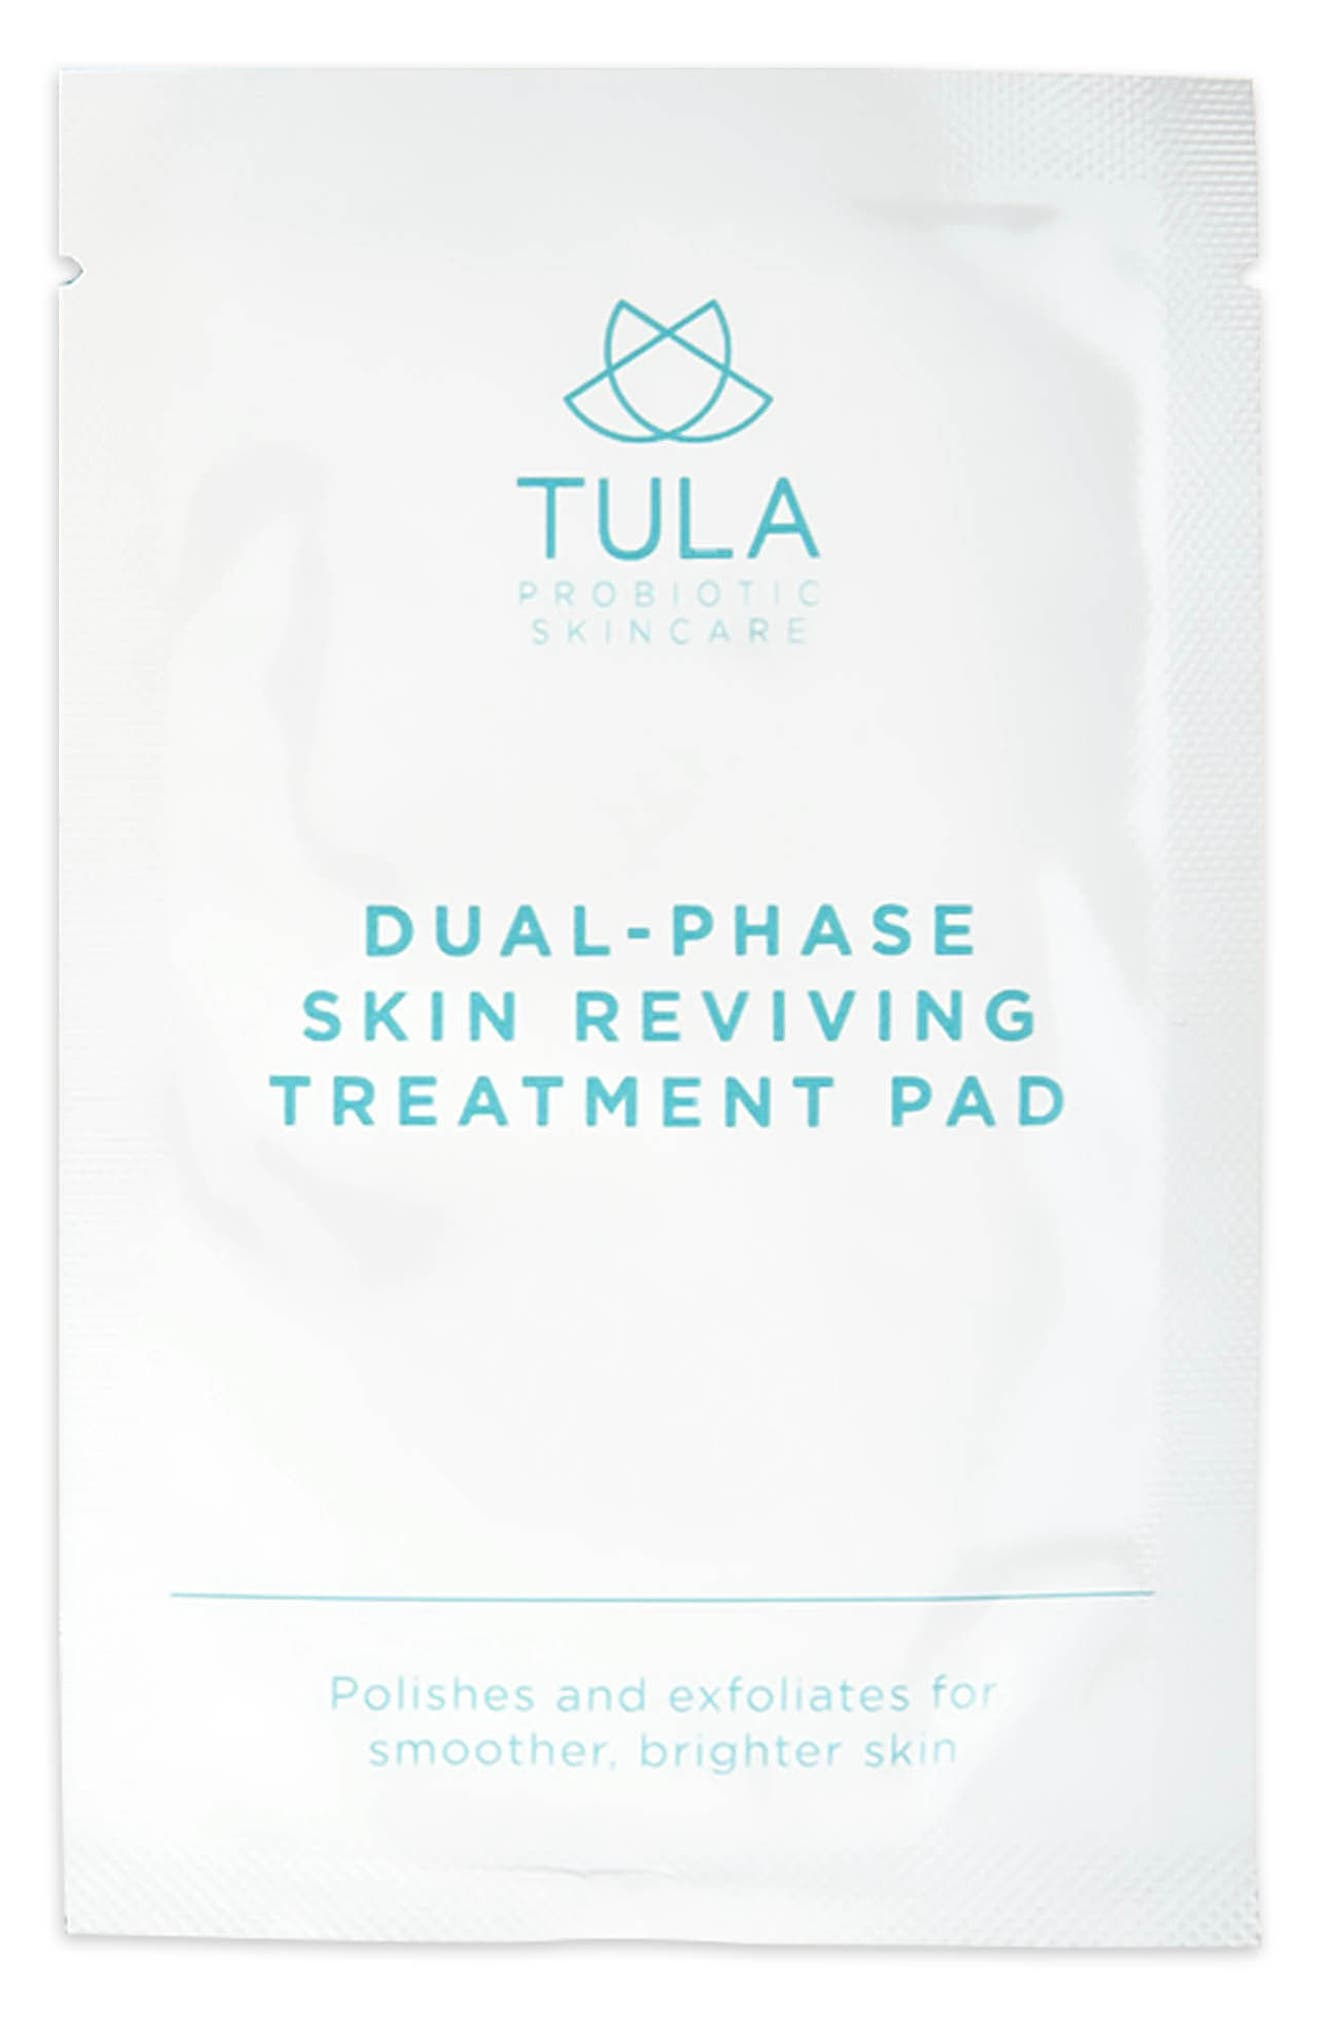 TULA PROBIOTIC SKINCARE,                             Dual Phase Skin Reviving Treatment Pads,                             Alternate thumbnail 2, color,                             NO COLOR